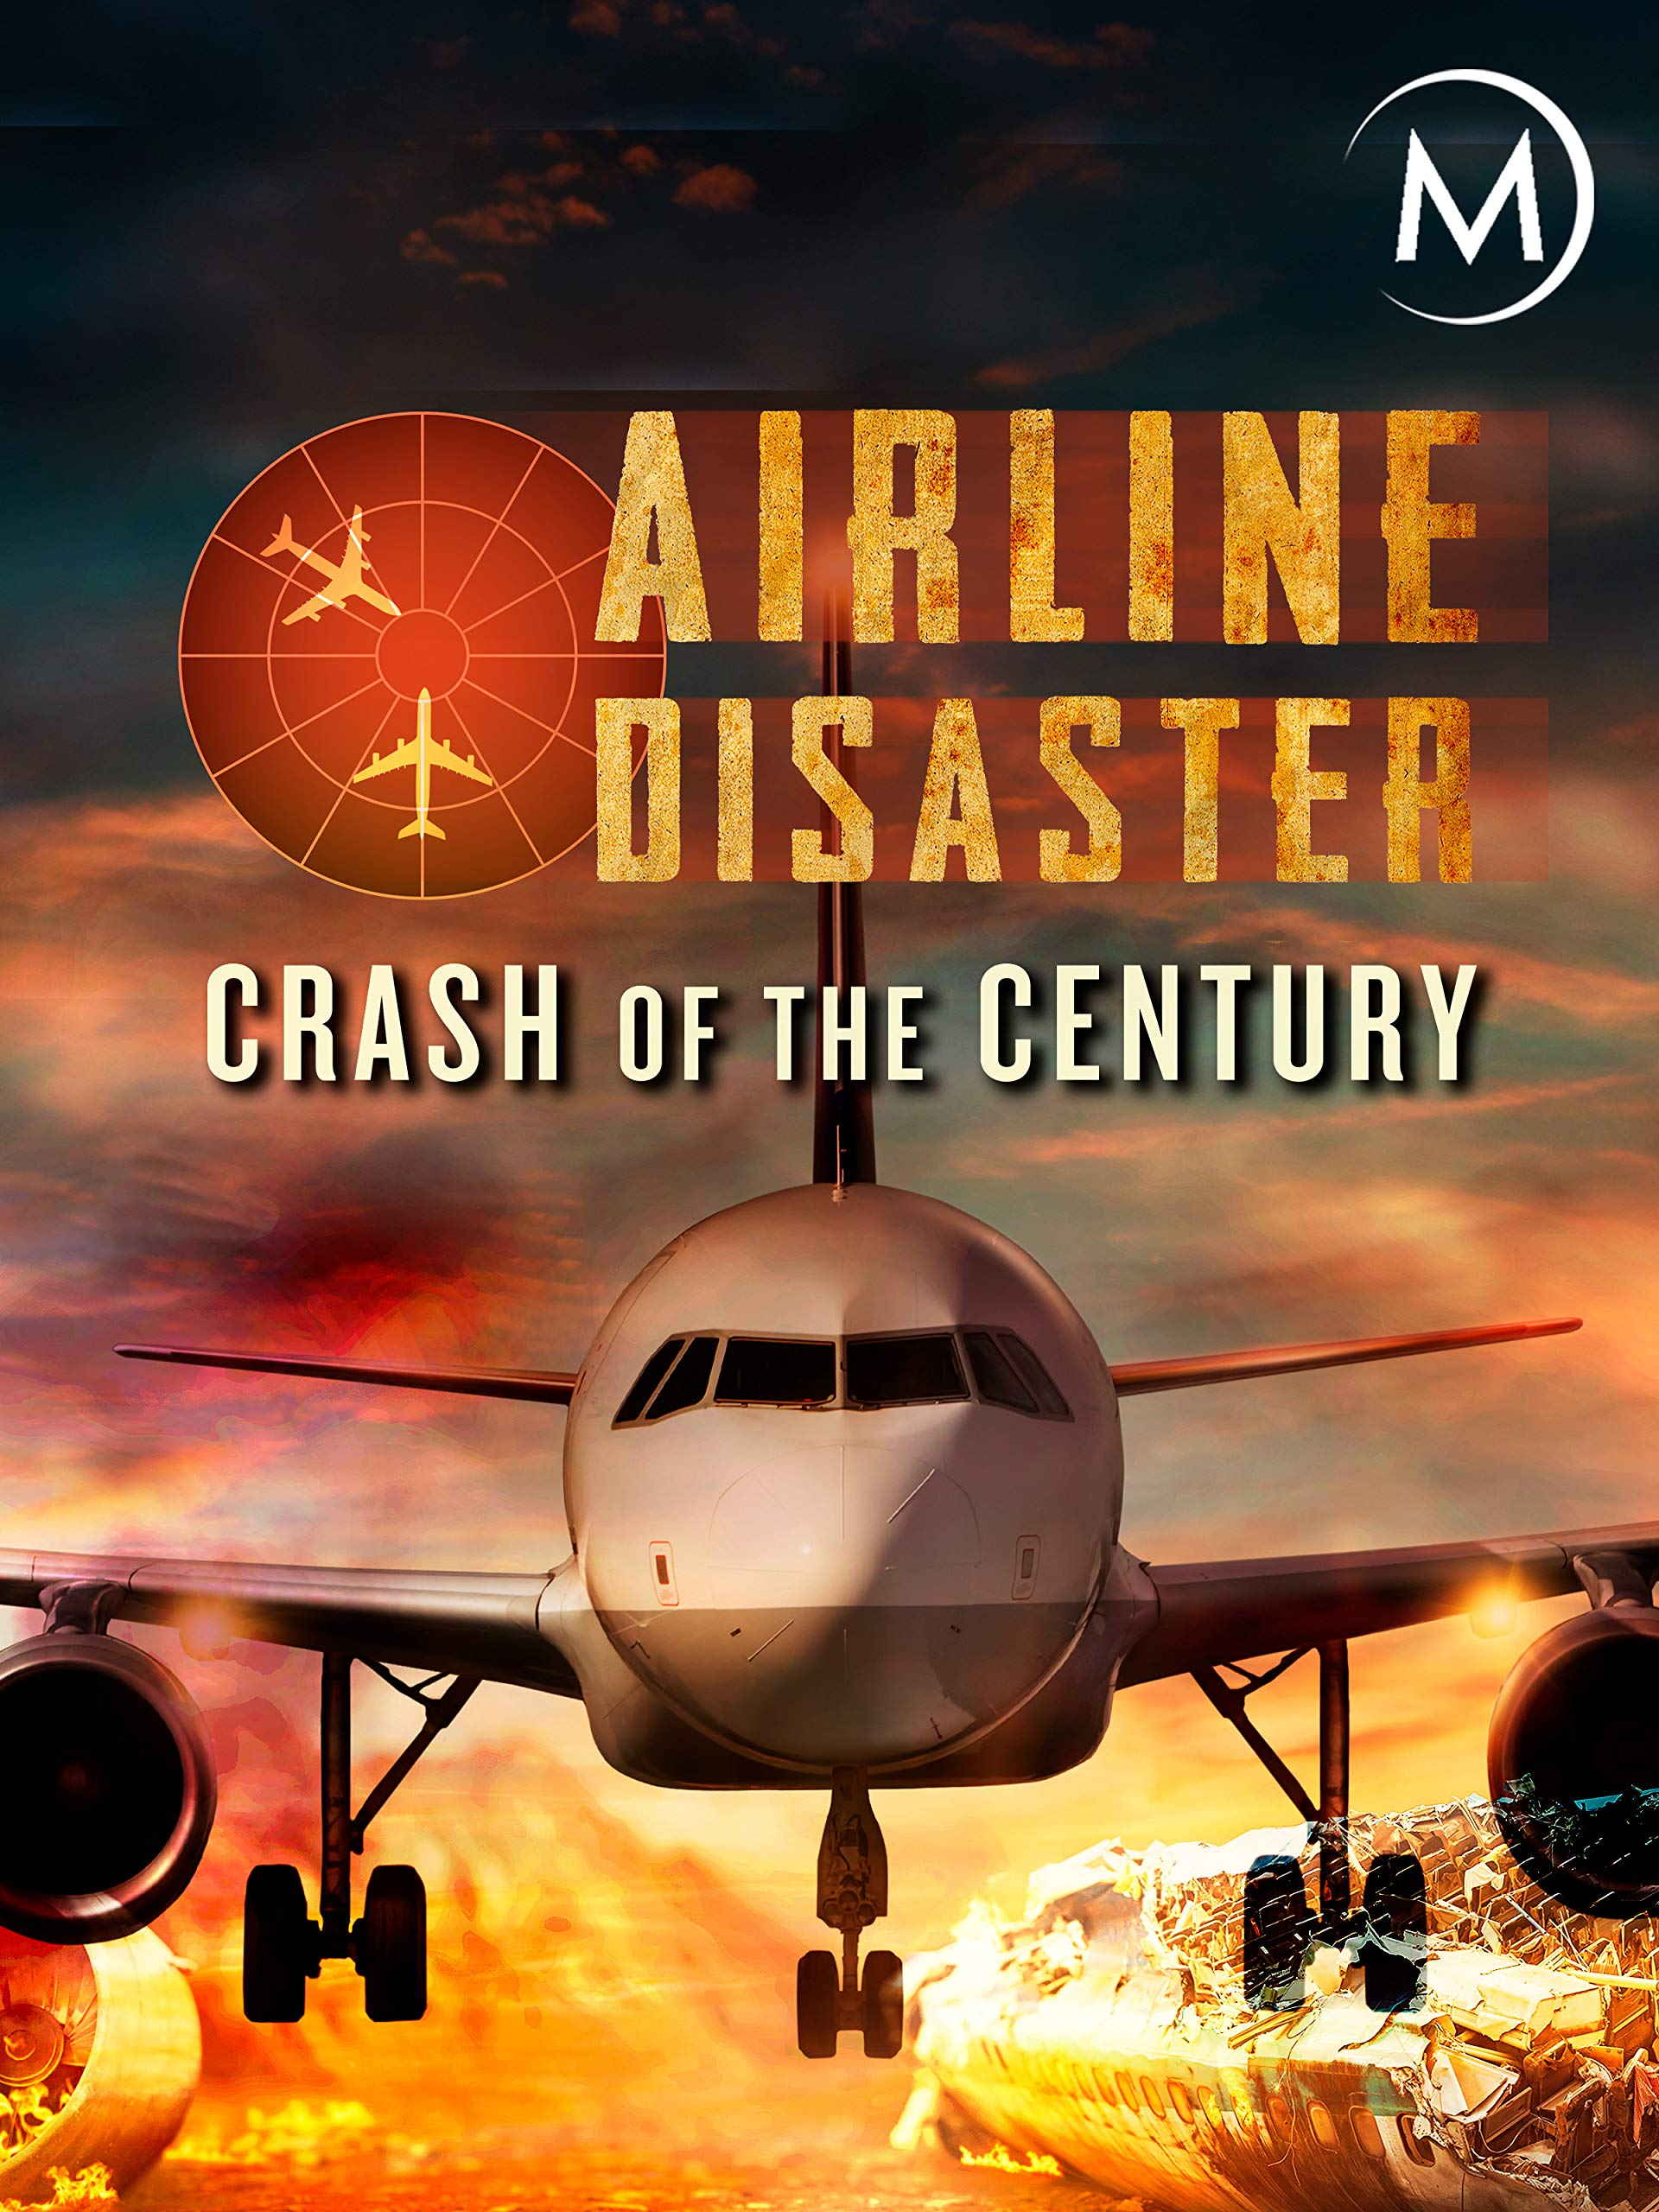 Airline Disaster: Crash of the Century on Amazon Prime Video UK